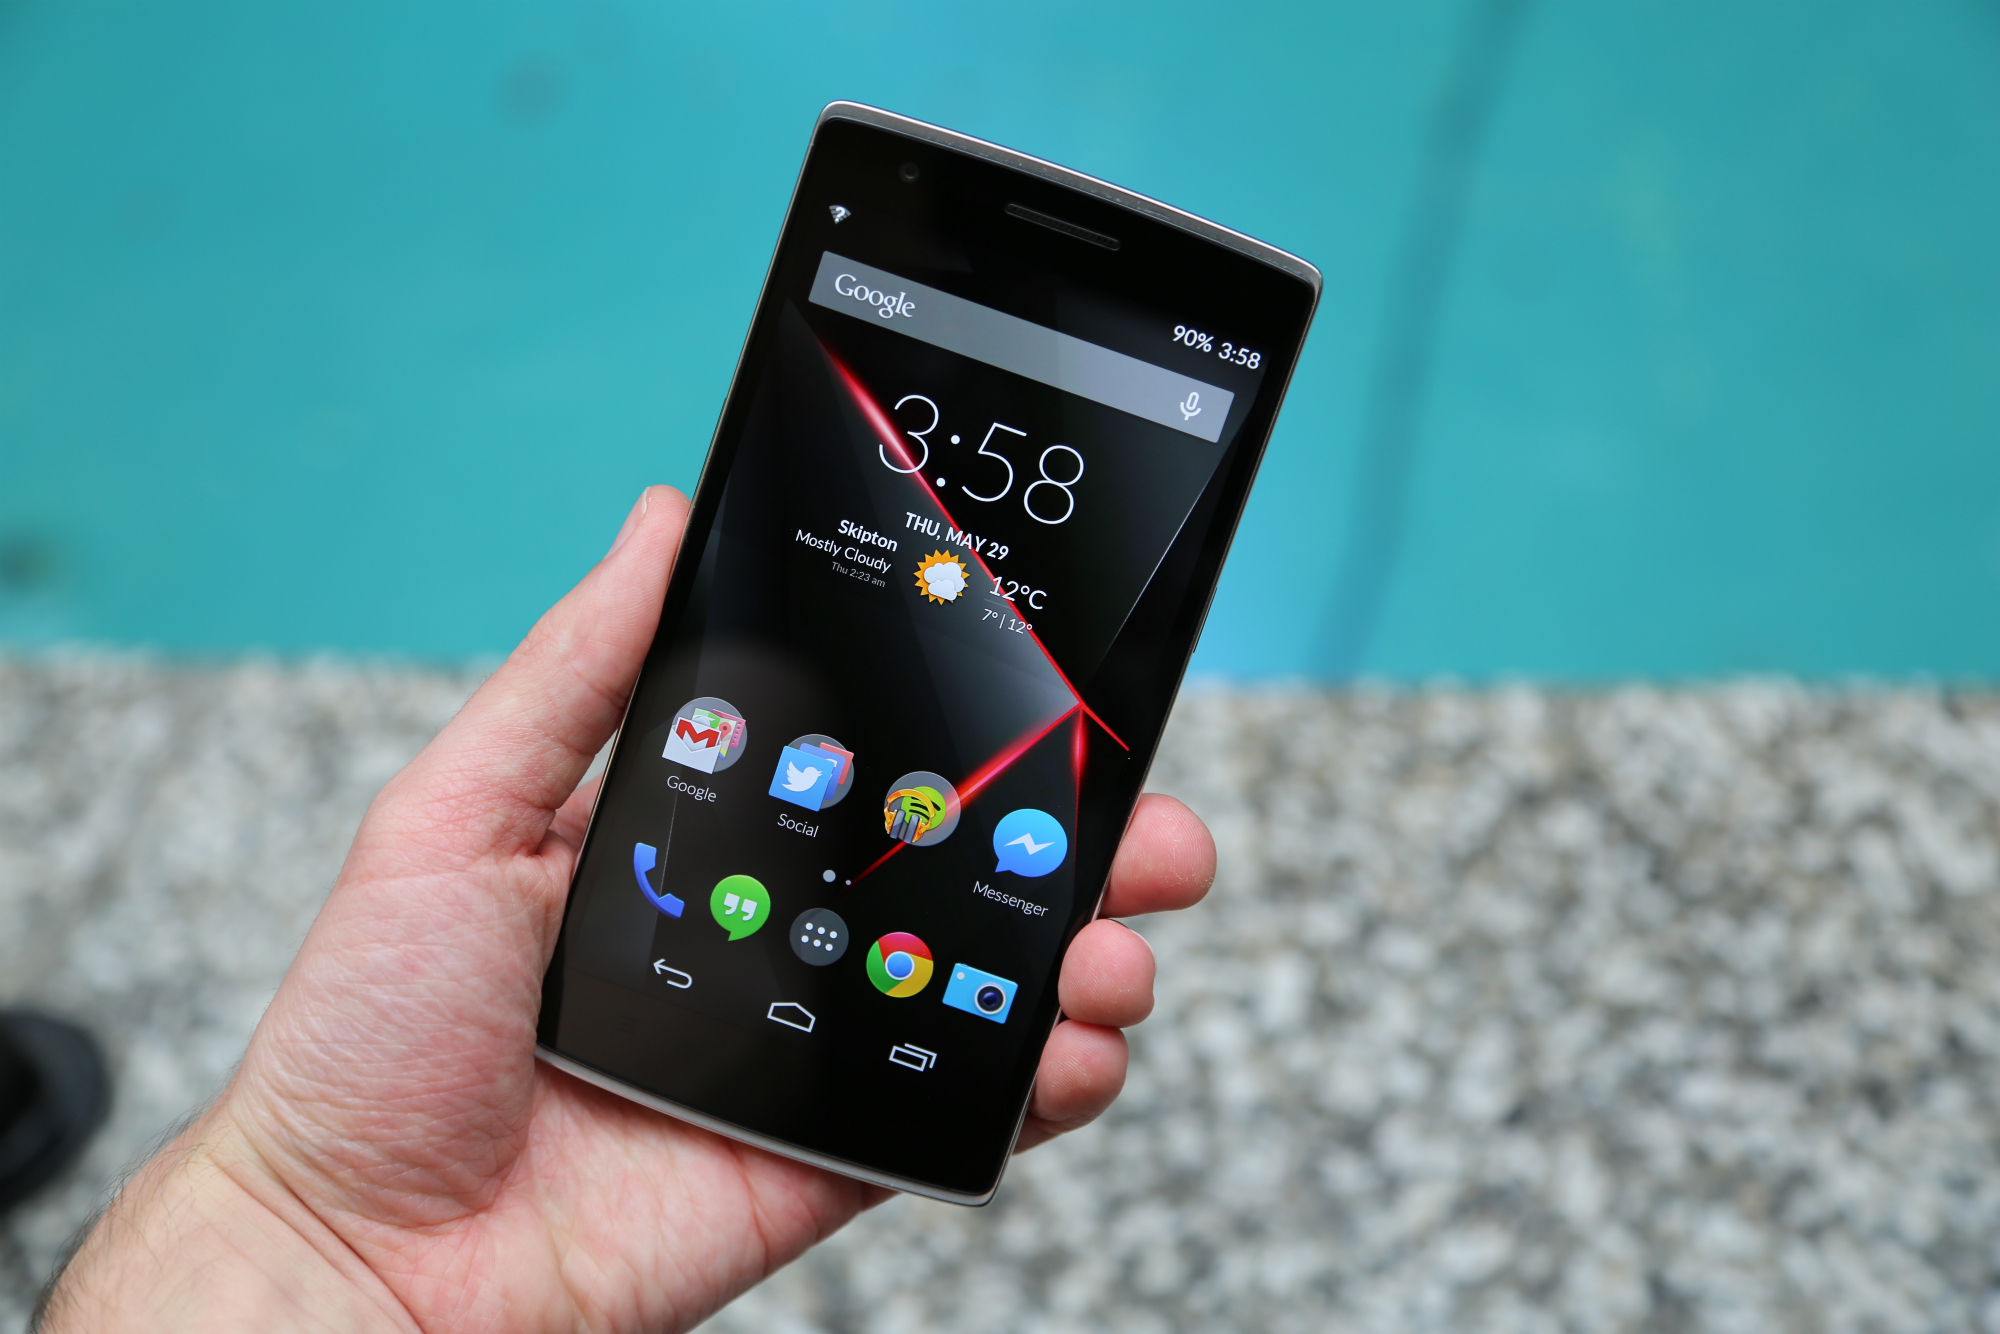 OnePlus One Review: Sublime in Almost Every Way